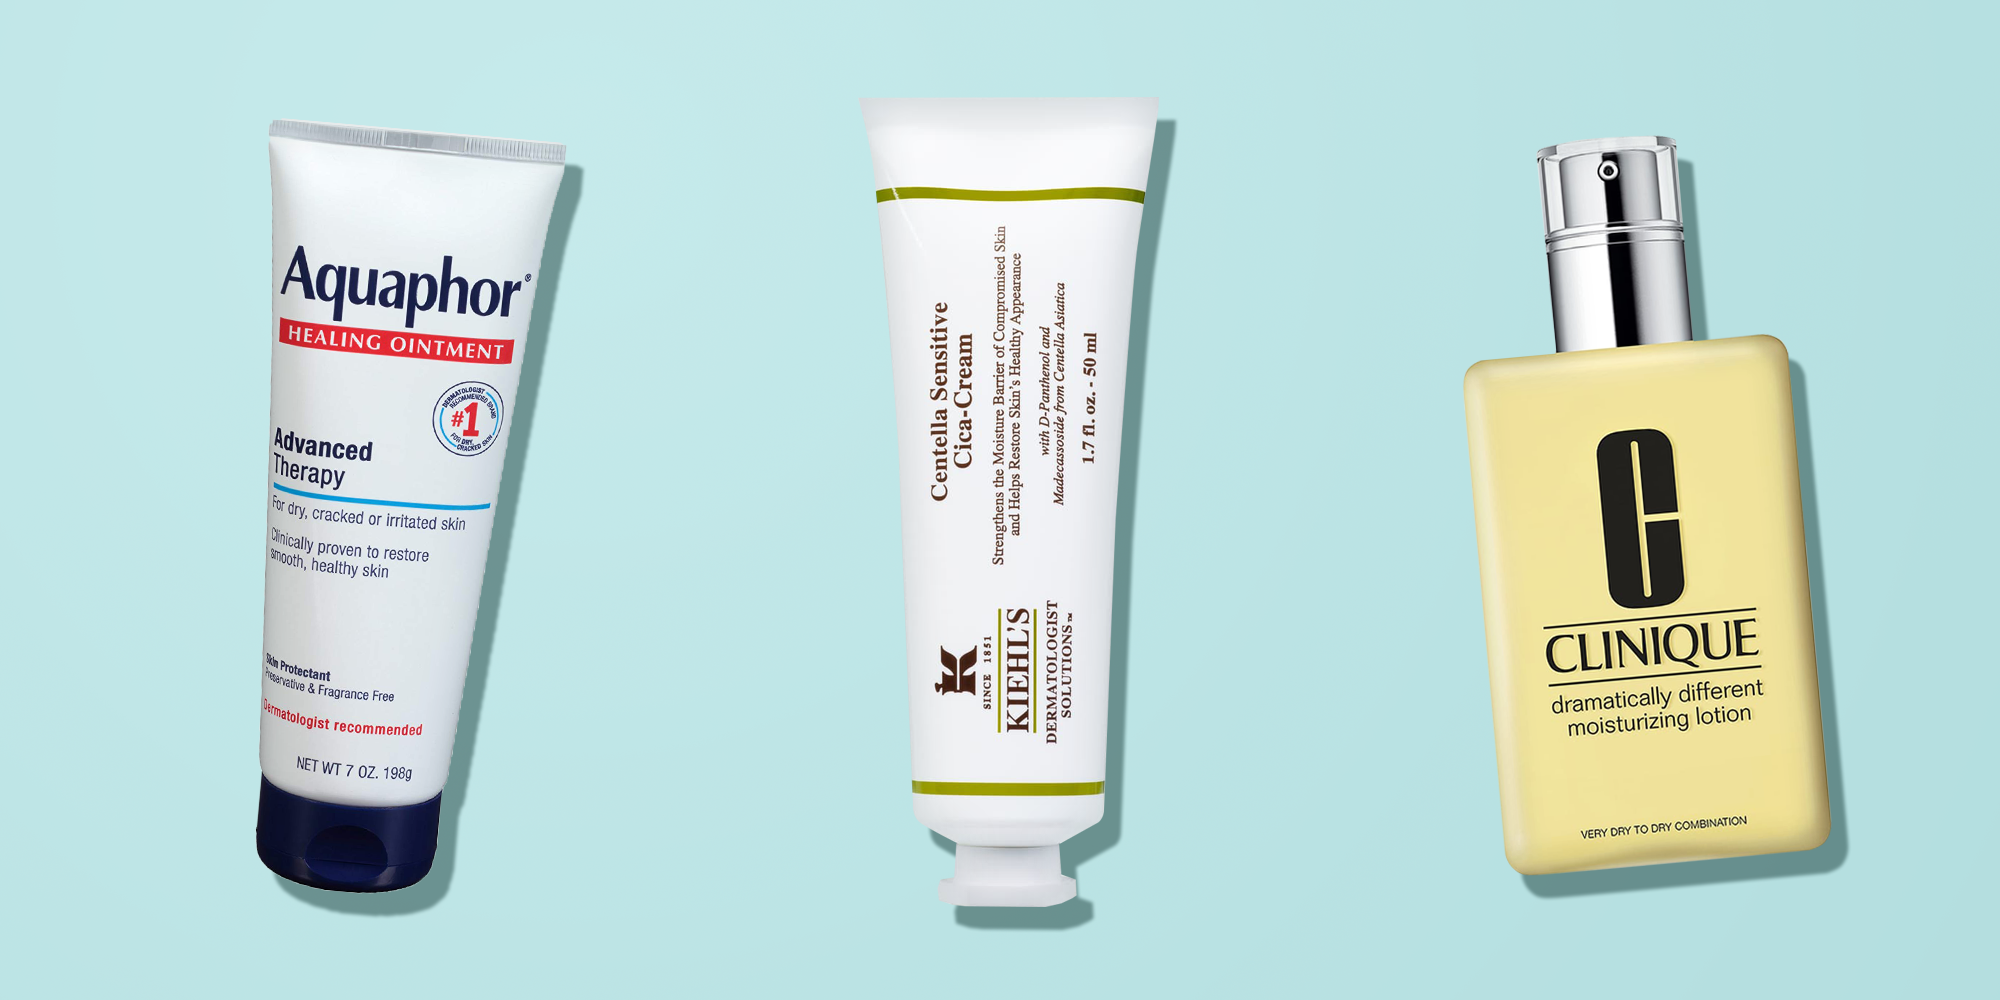 15 Best Moisturizers for Sensitive Skin, According to Skincare Experts and Dermatologists